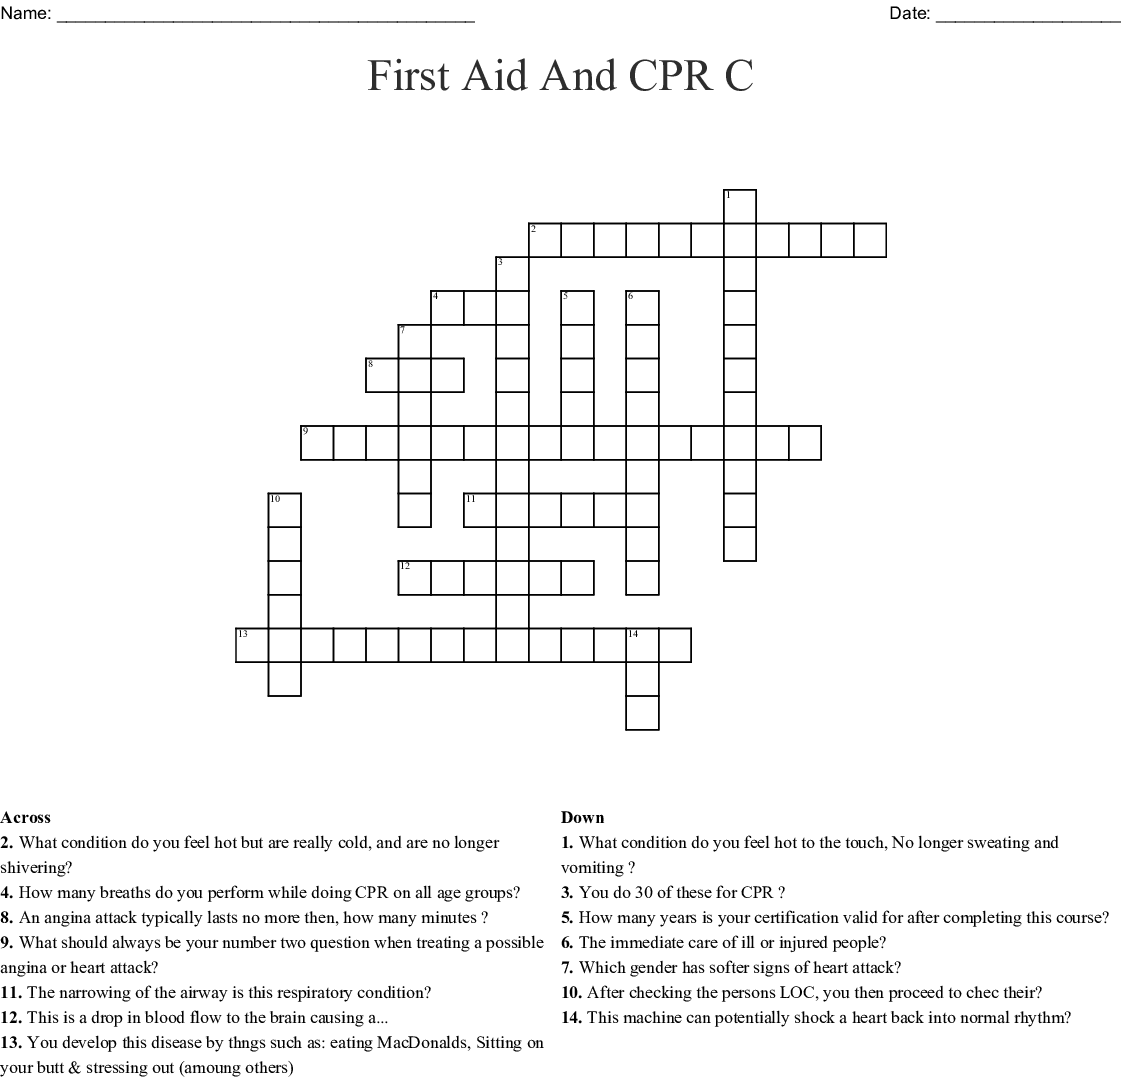 First Aid And Cpr C Crossword